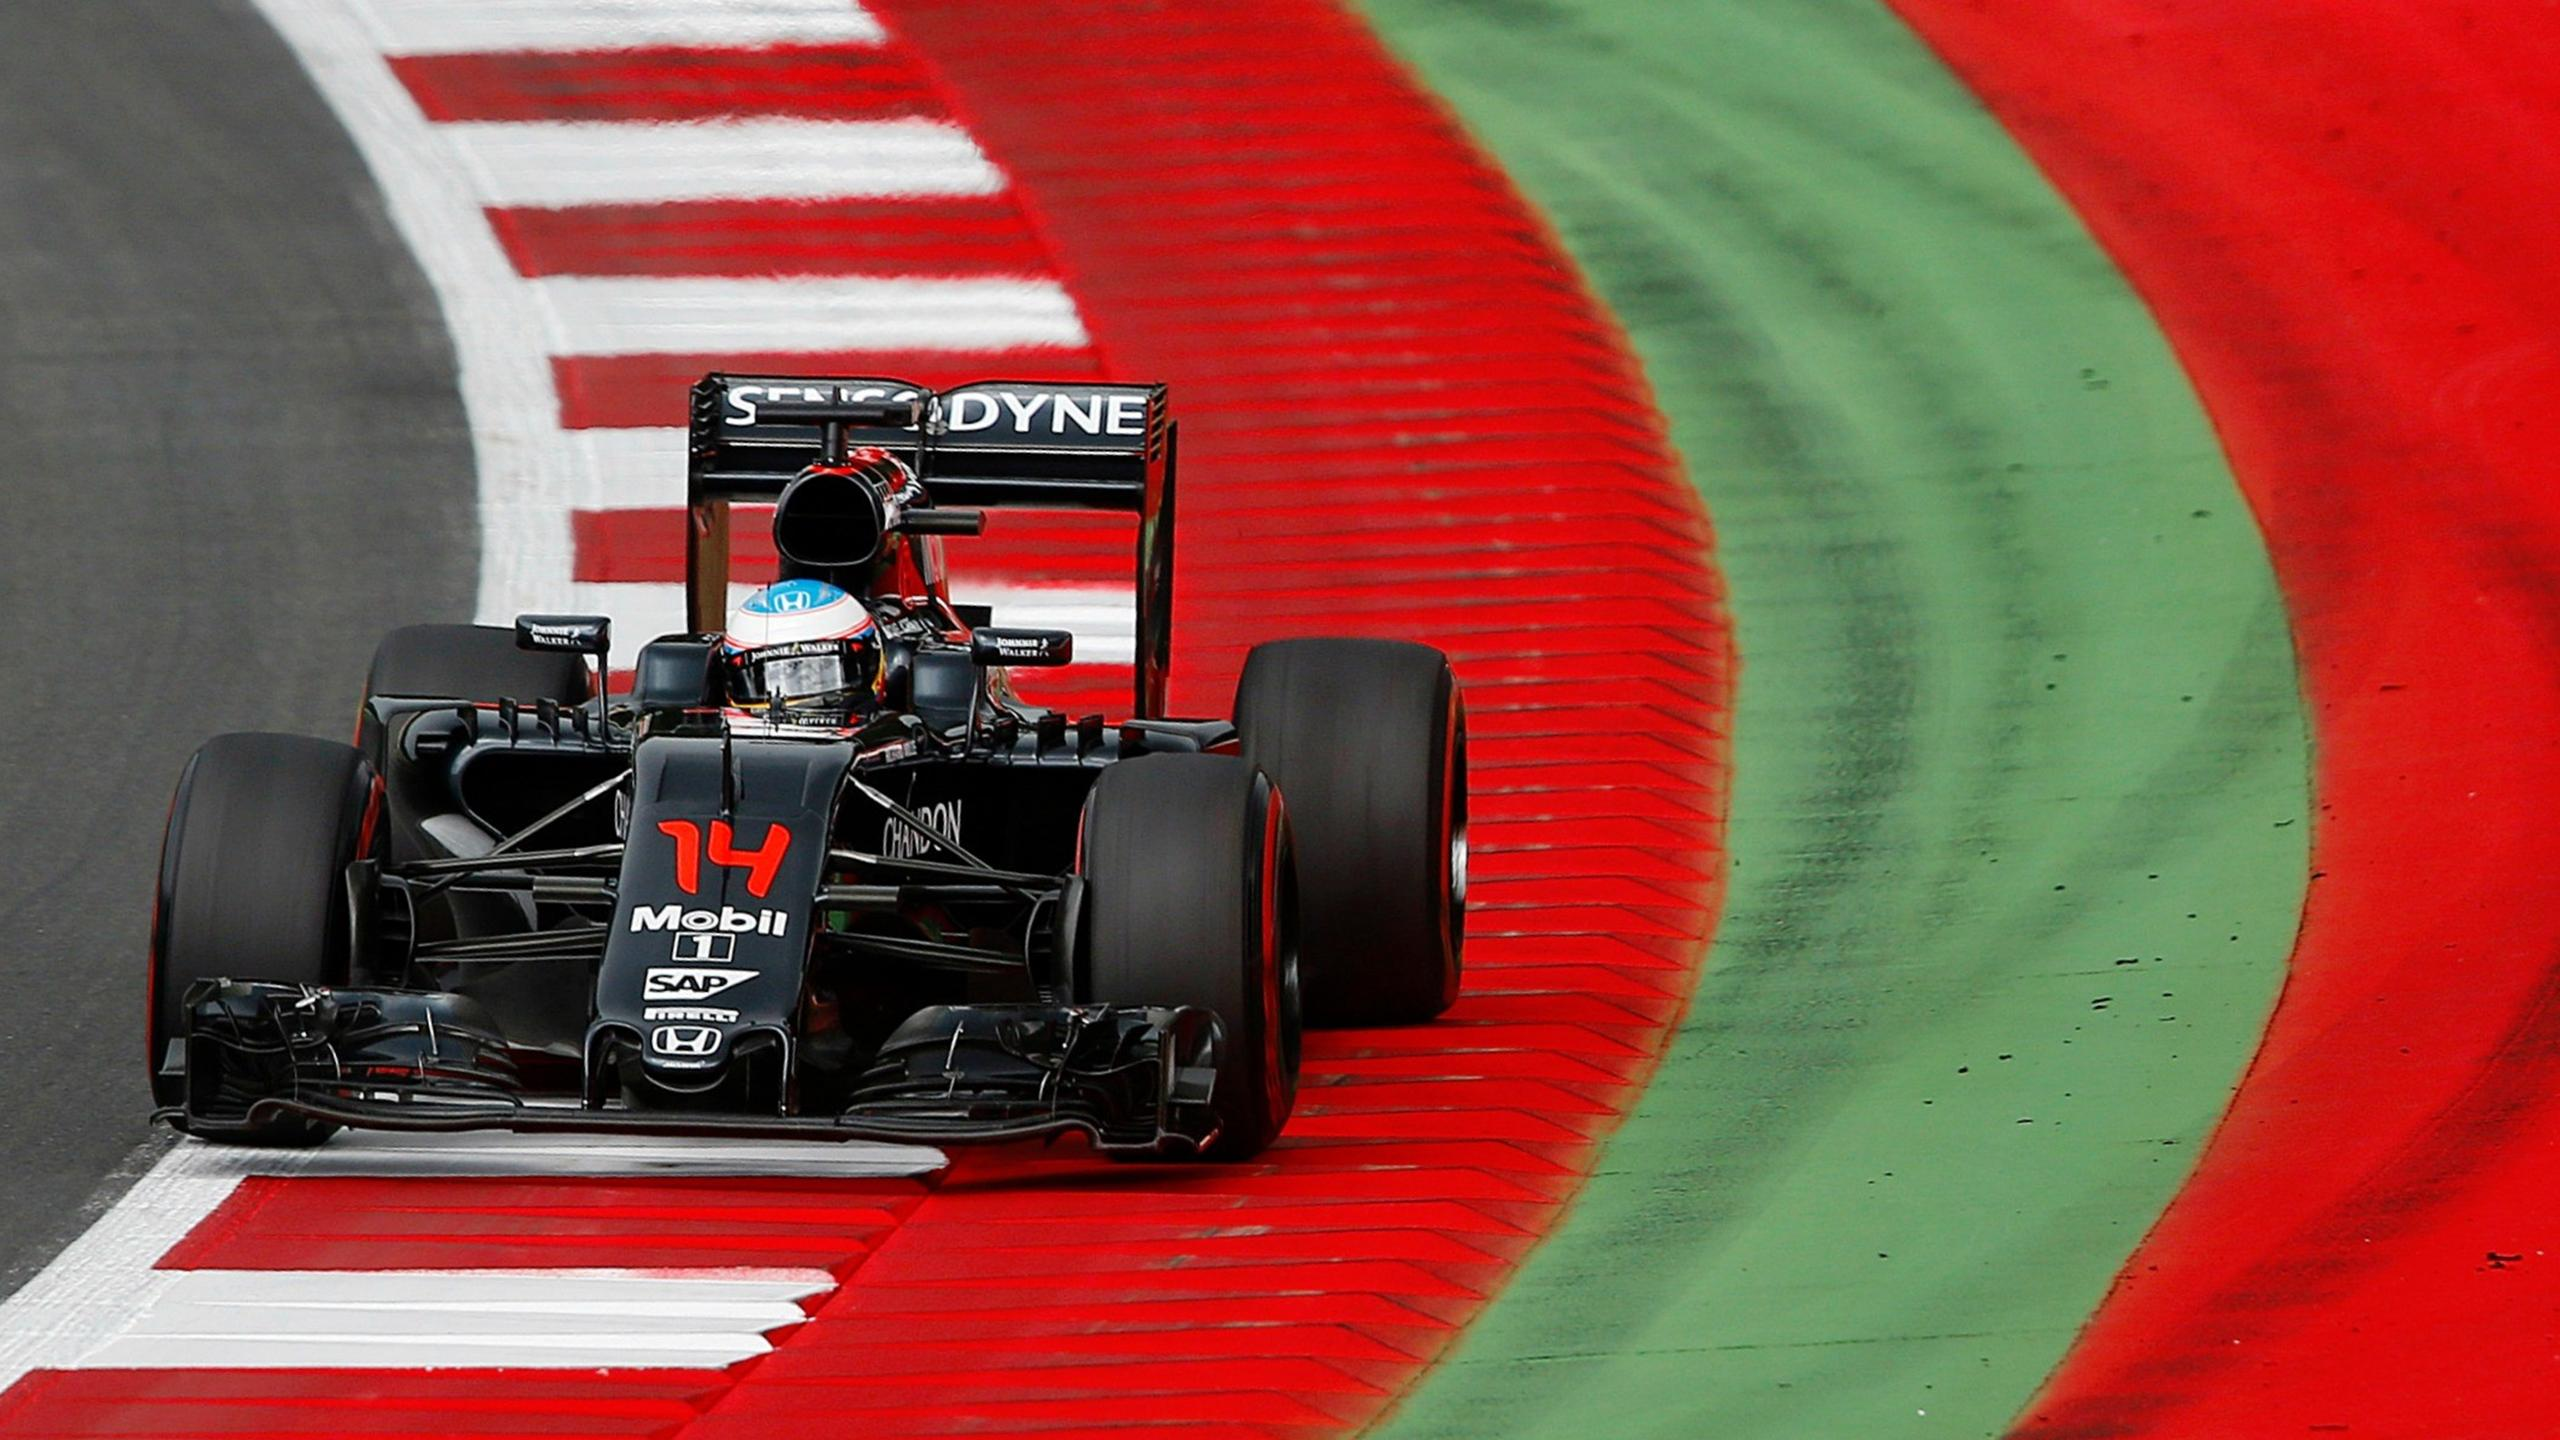 Fernando Alonso (McLaren) - GP of Austria 2016